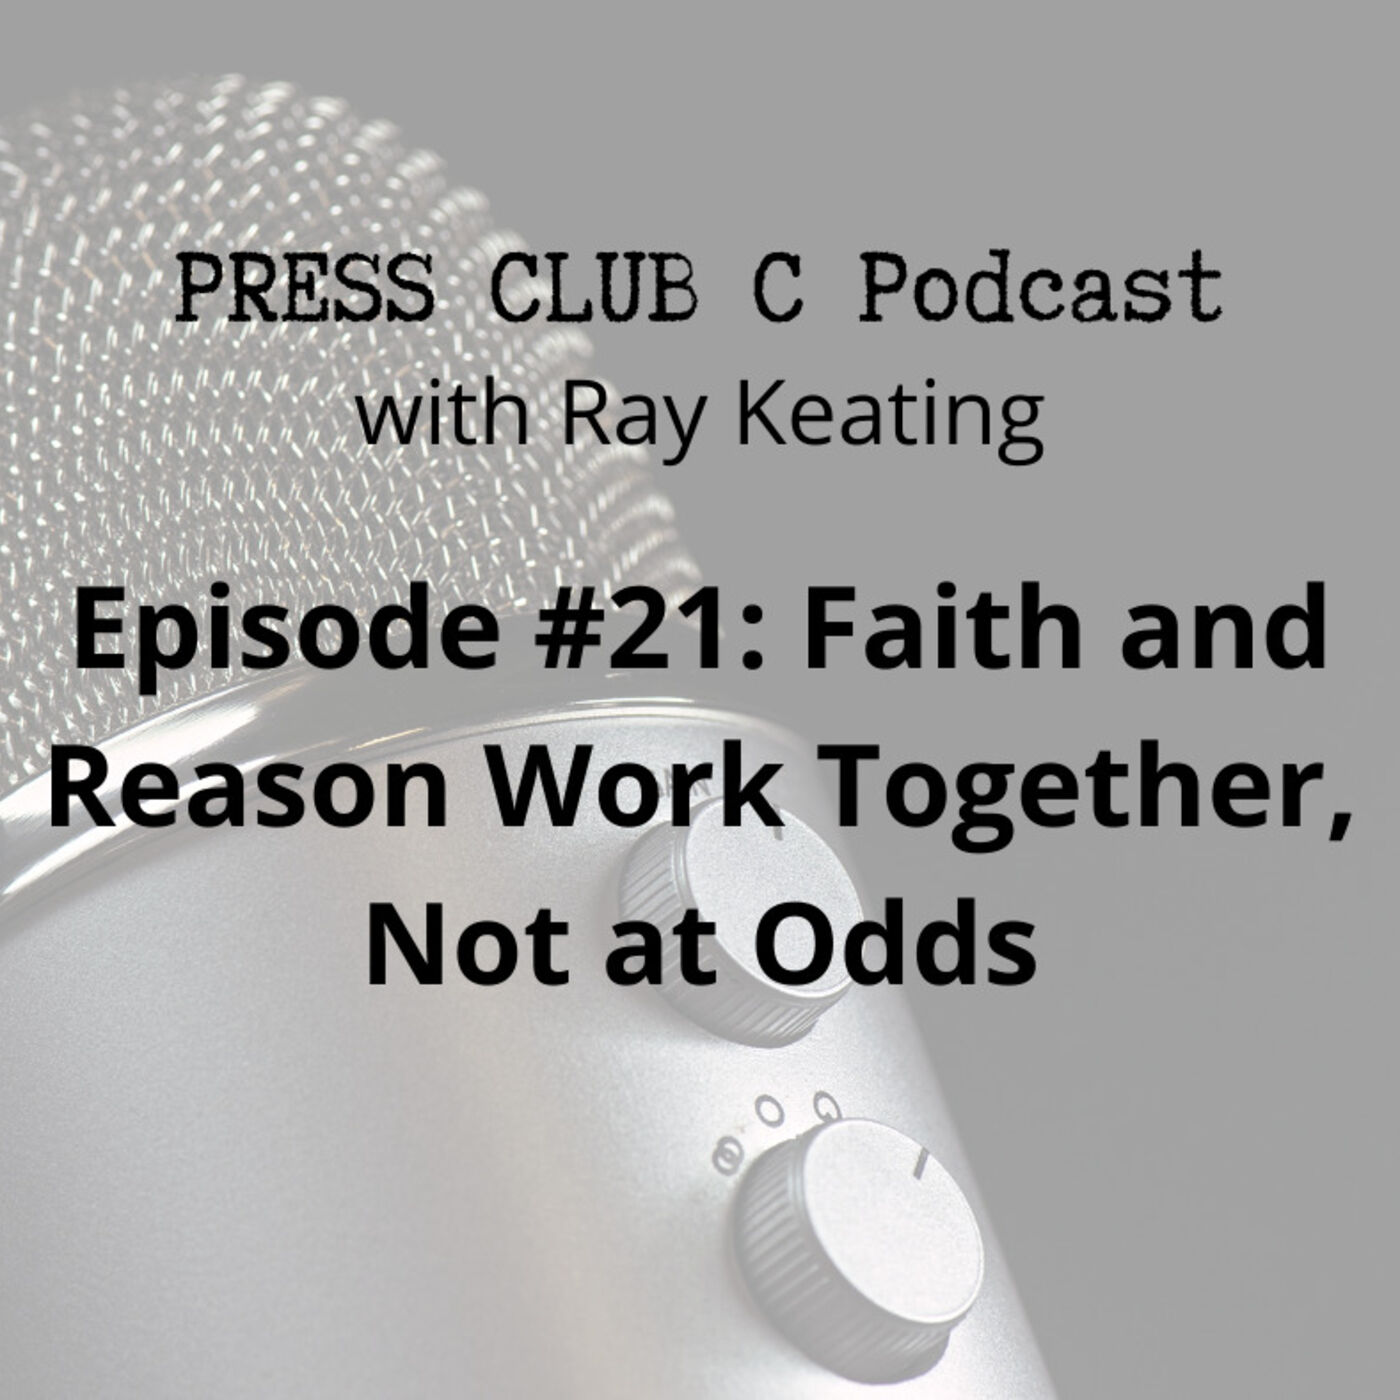 Episode #21: Faith and Reason Work Together, Not at Odds